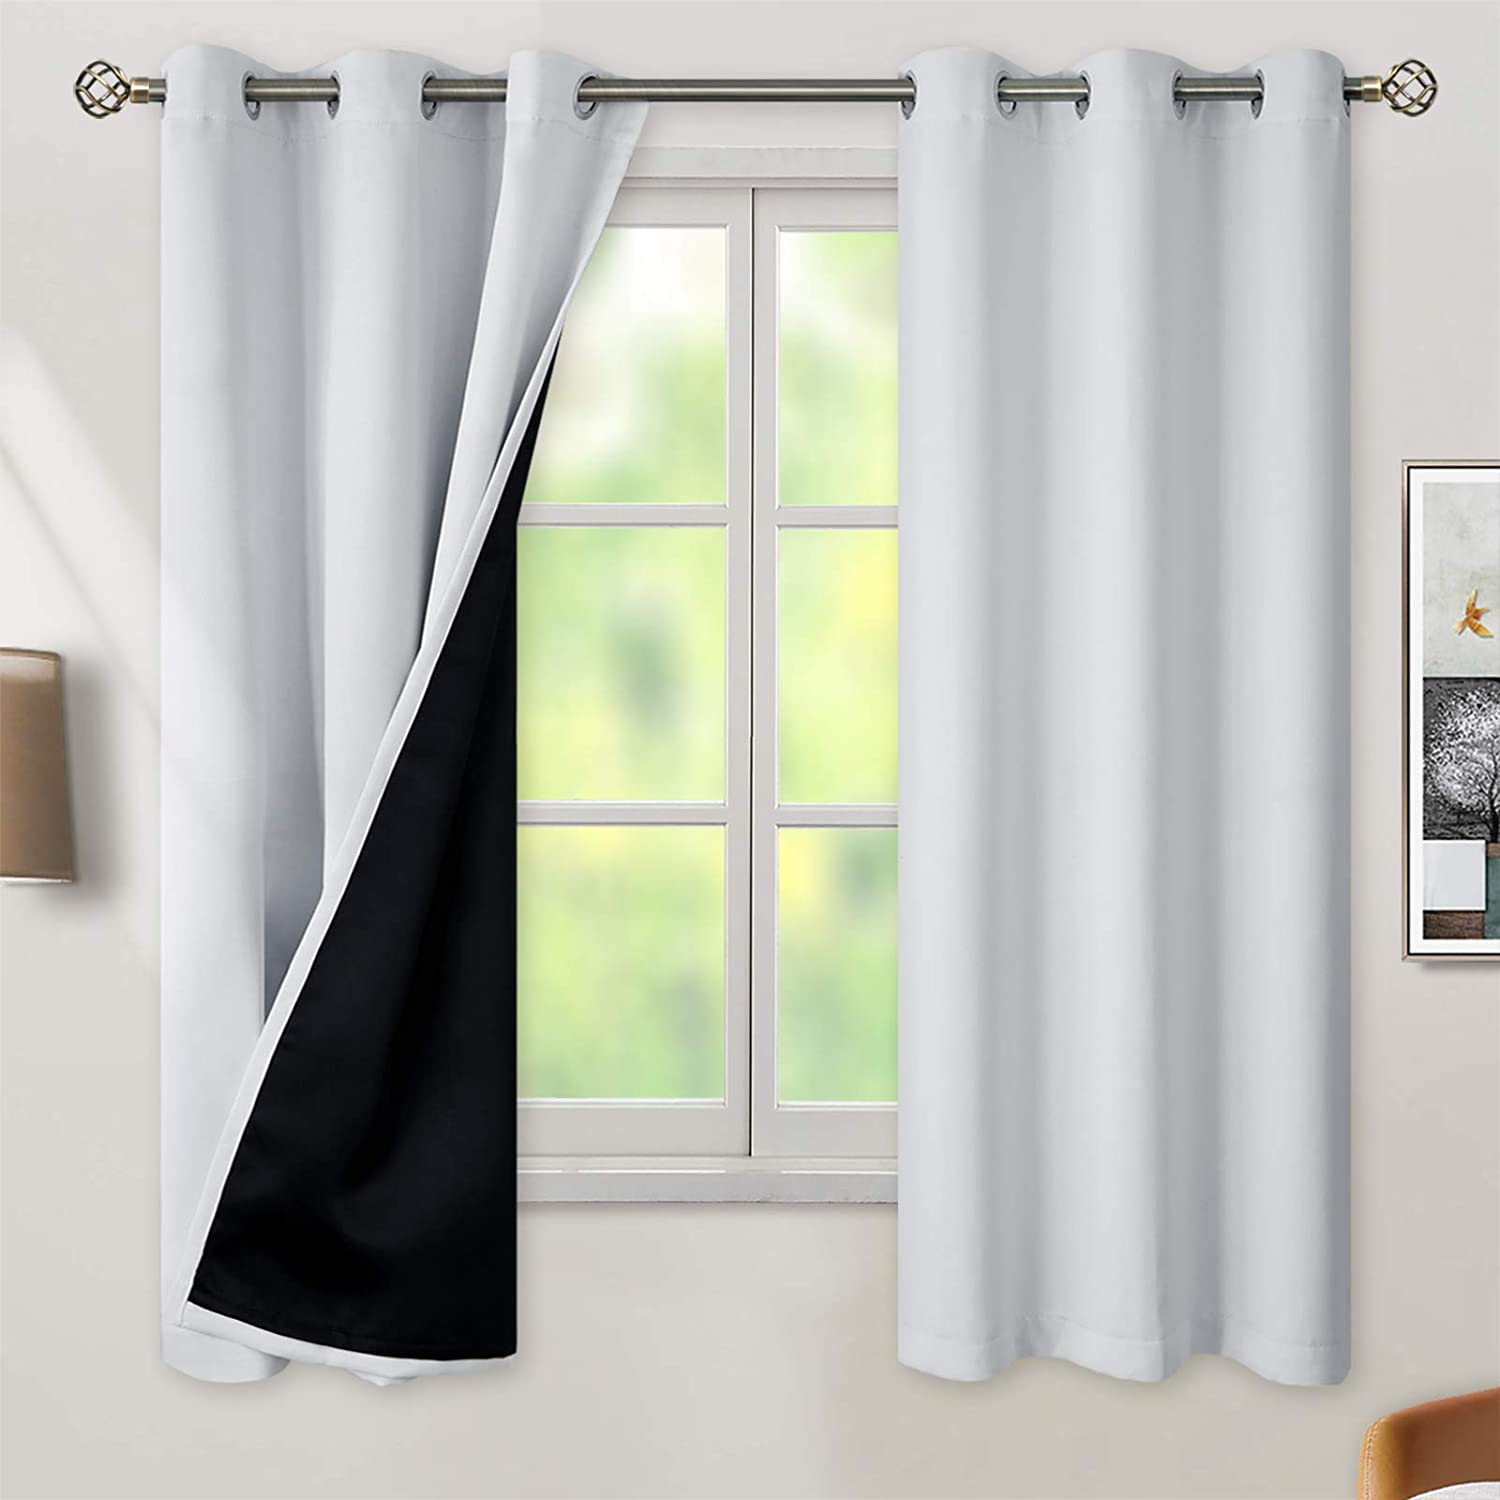 BGment Thermal Insulated 100% Blackout Curtains for Bedroom with Black Liner, Double Layer Full Room Darkening Noise Reducing Grommet Curtain ( 42 x 63 Inch, Greyish White, 2 Panels )